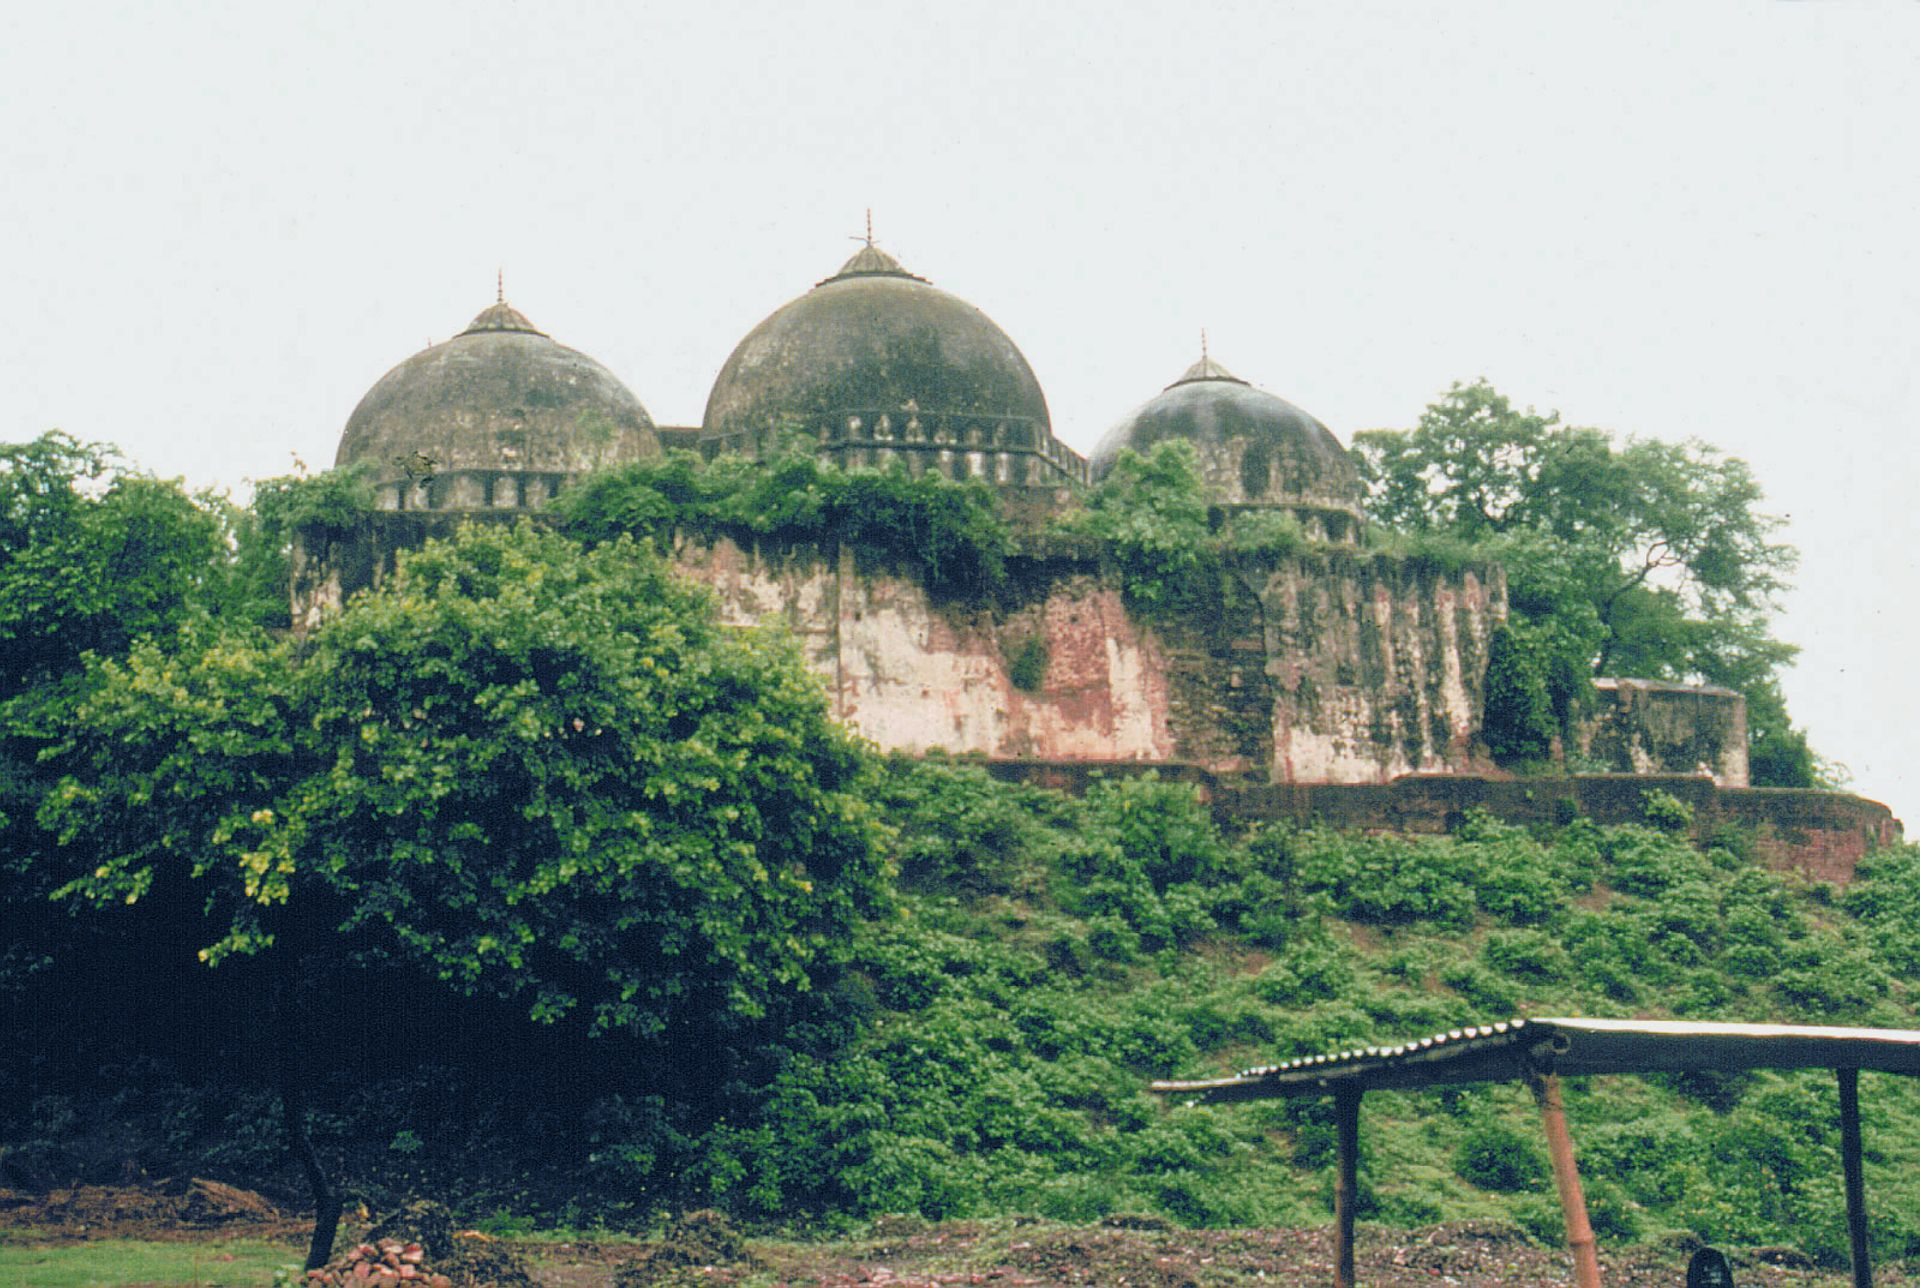 The Babri Masjid in Ayodhya was torn down by Hindu extremists in 1992 ©Frederick M. Asher